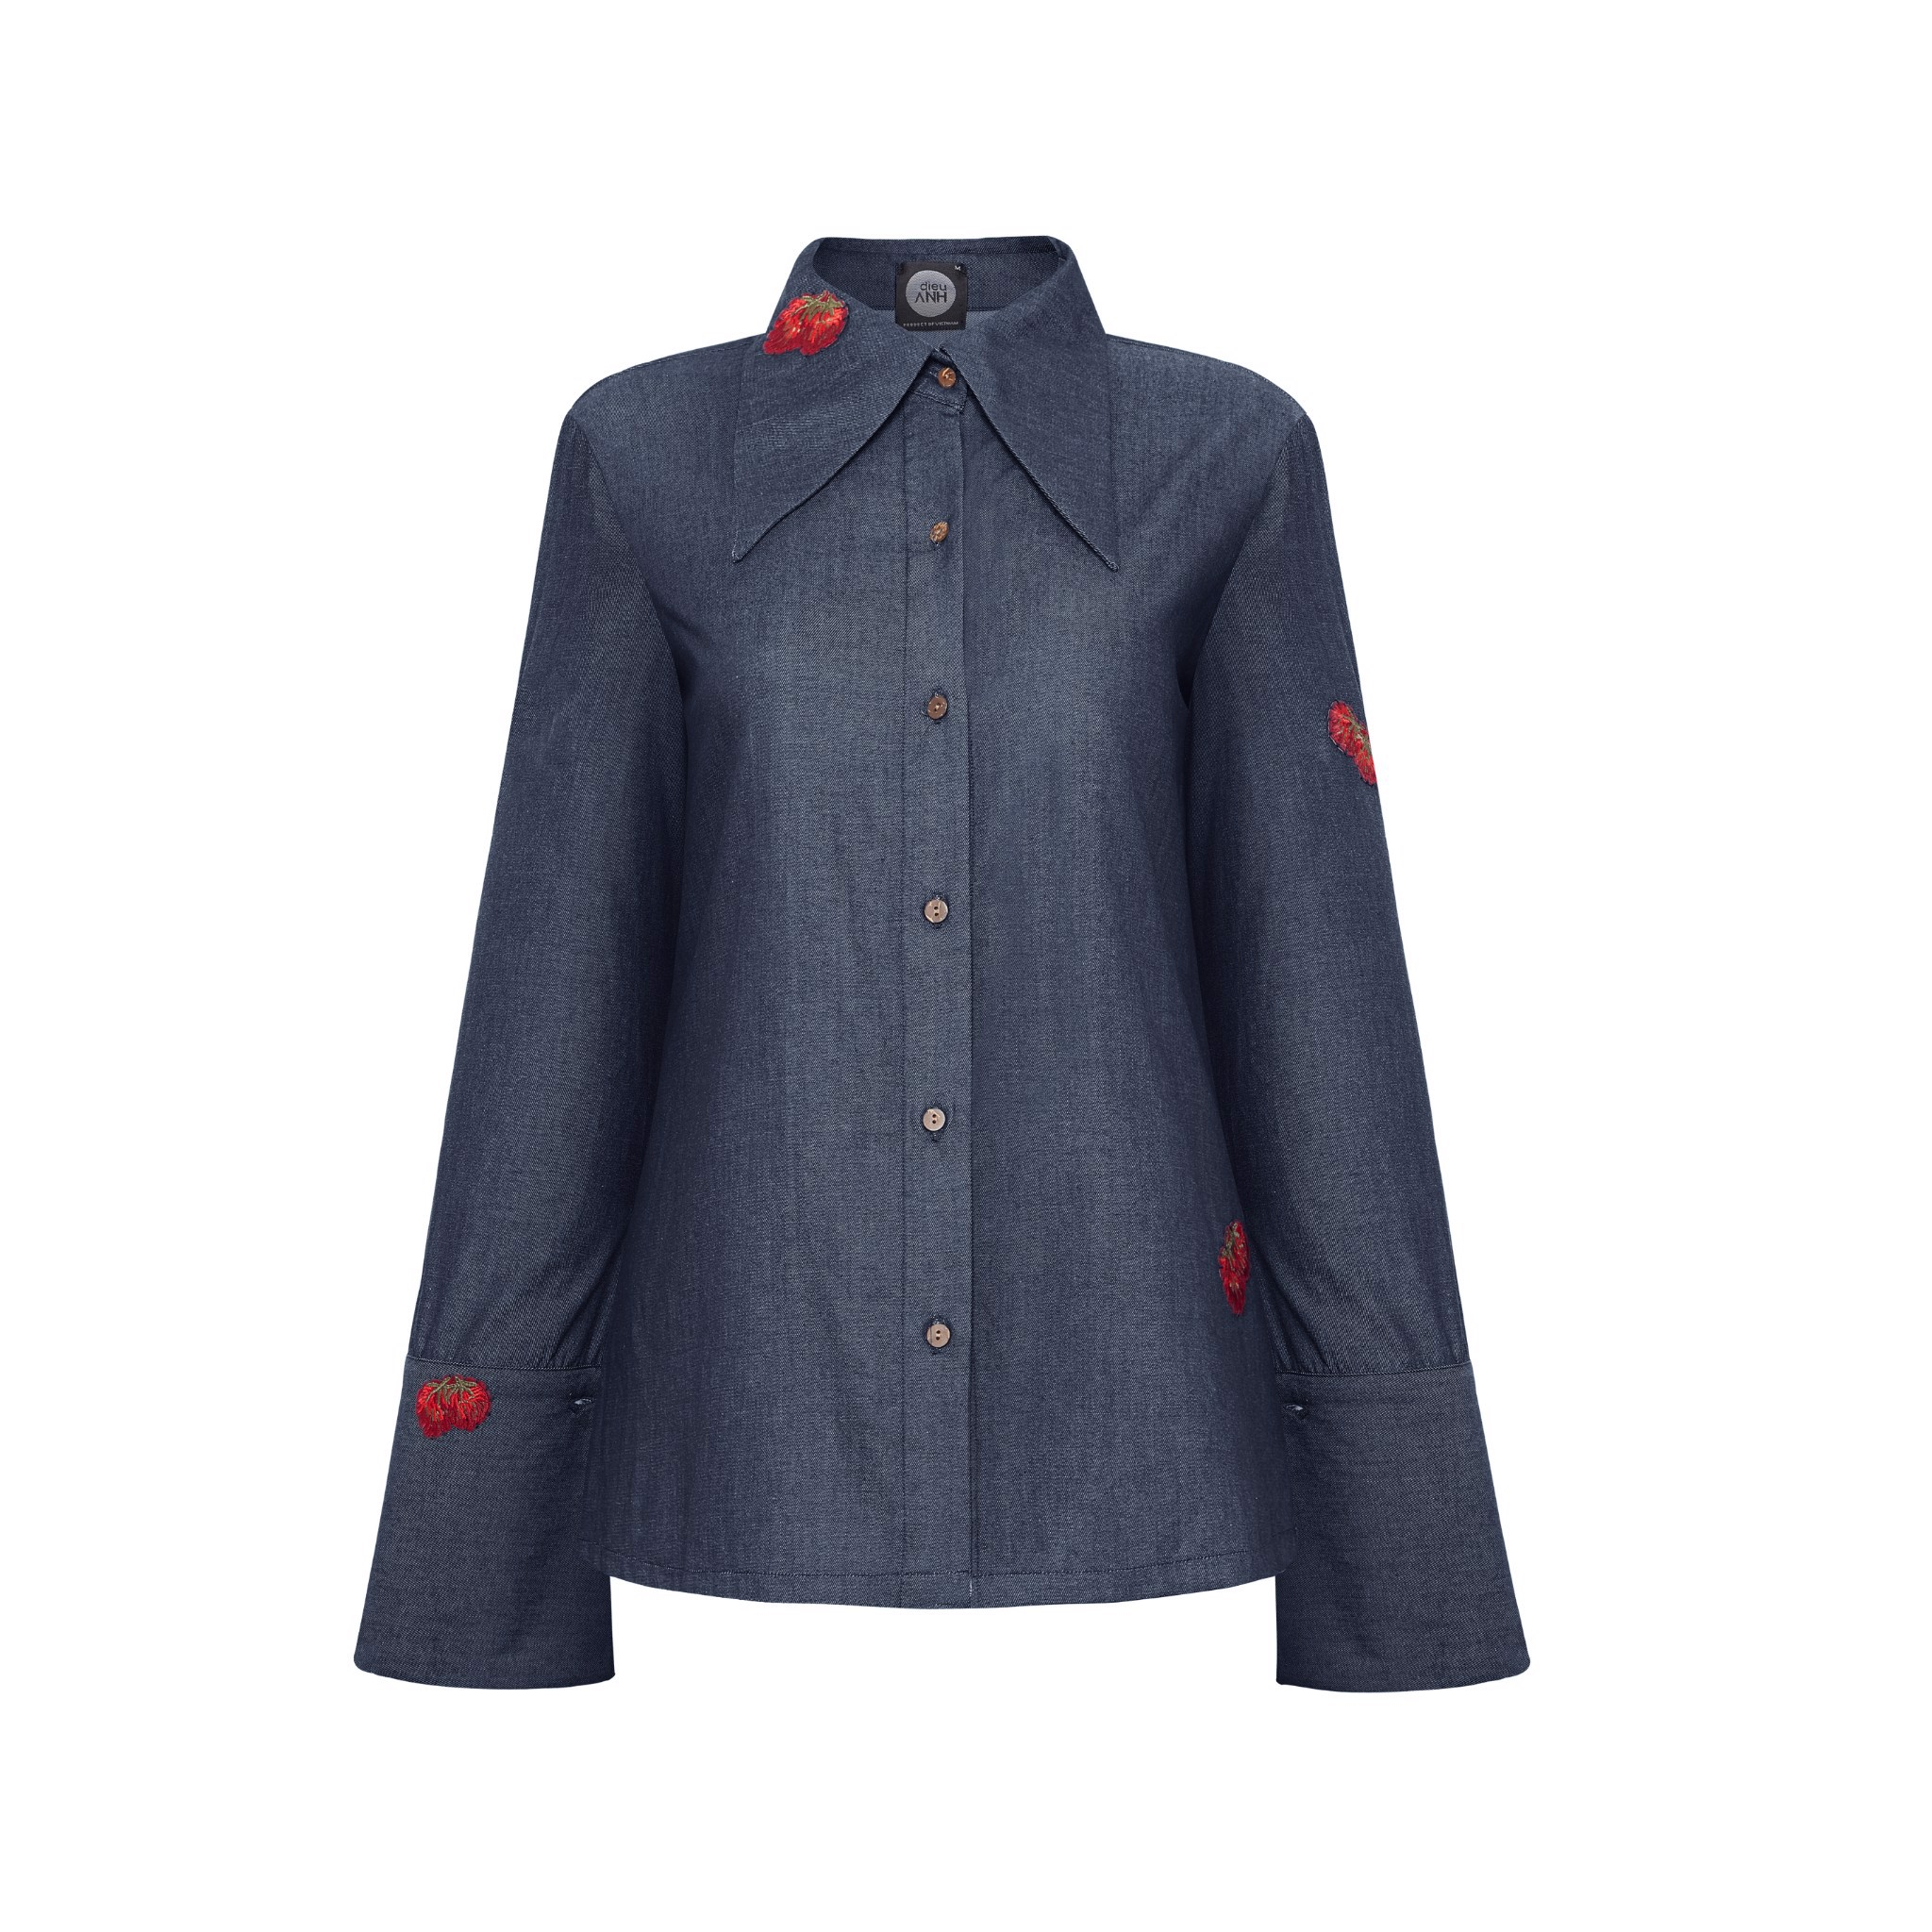 Navy Cotton Denim Shirt